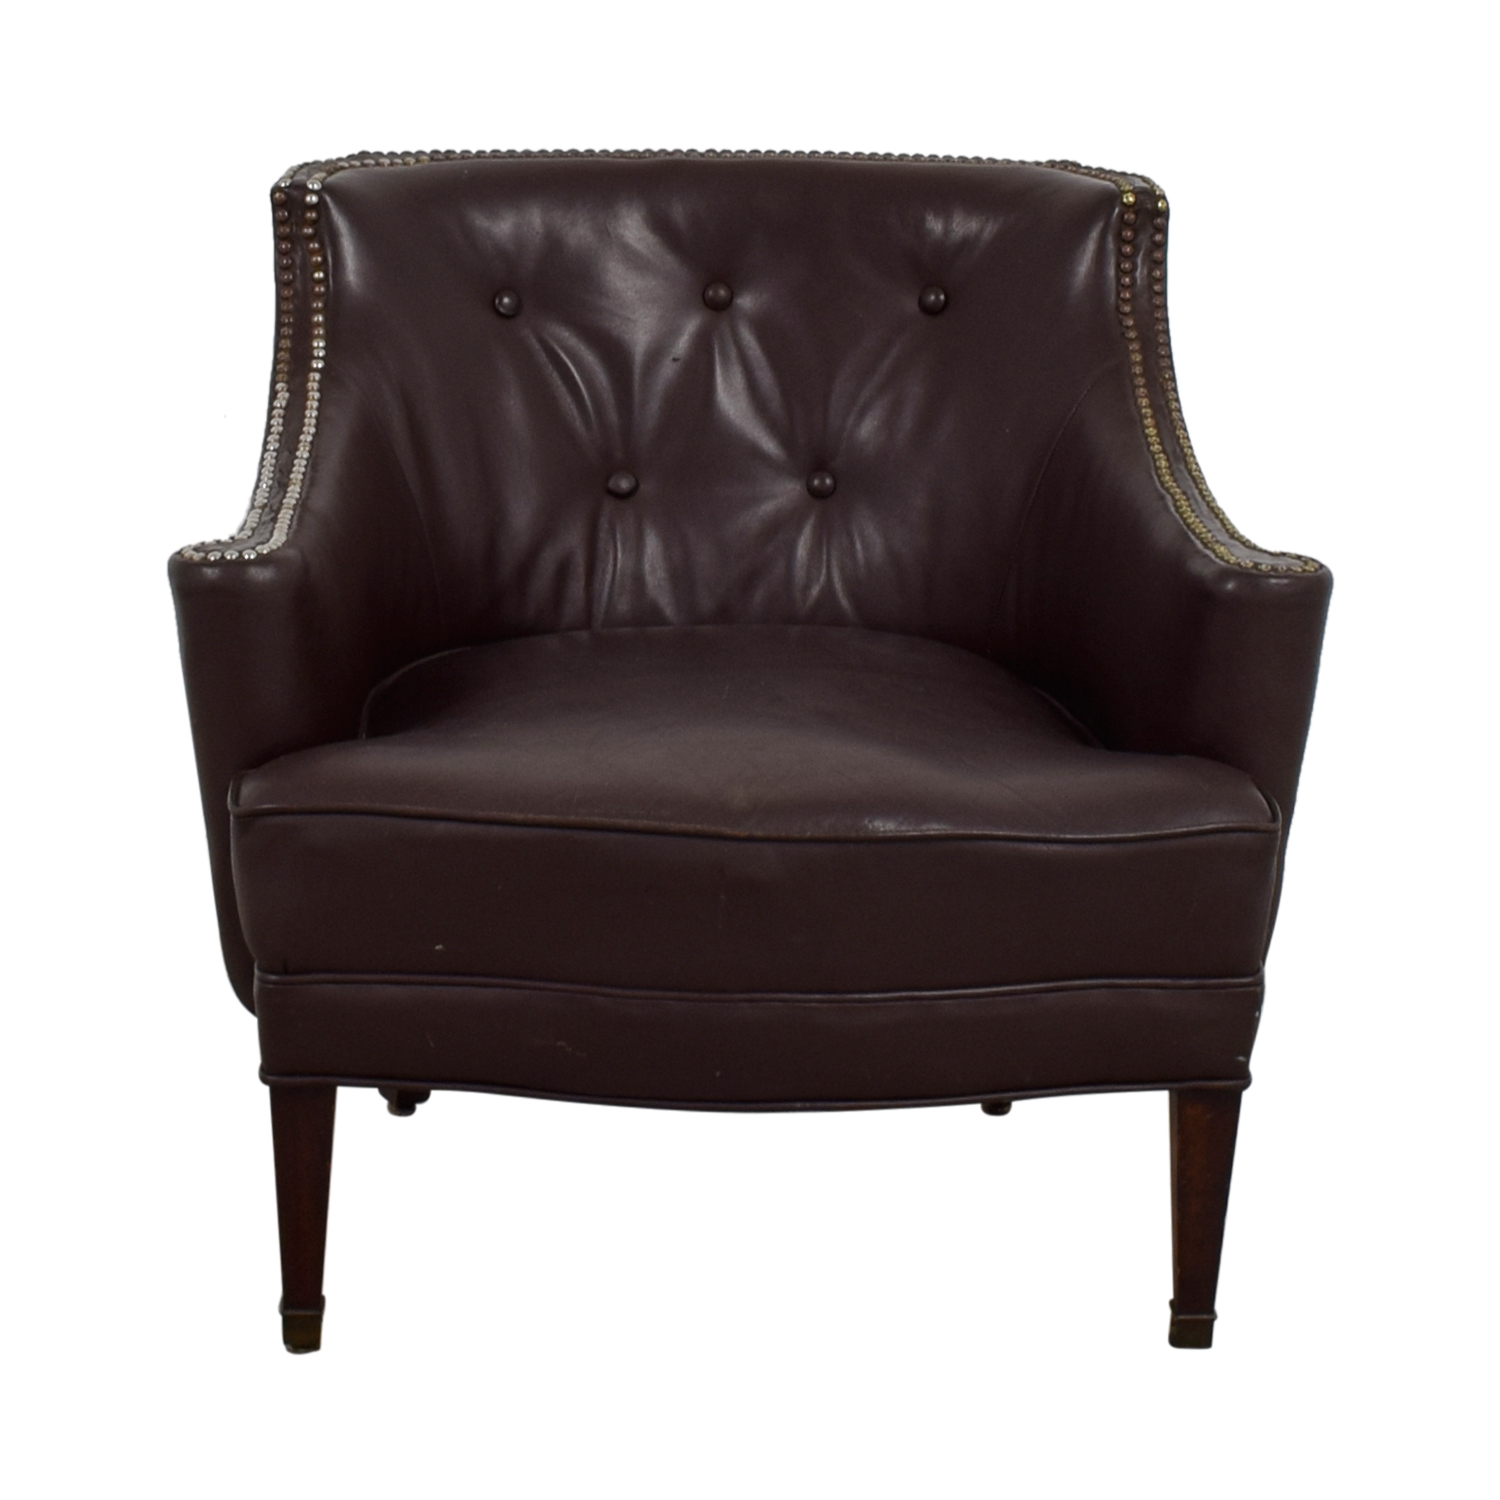 Pier 1 Imports Pier 1 Imports Brown Leather Side Chair price